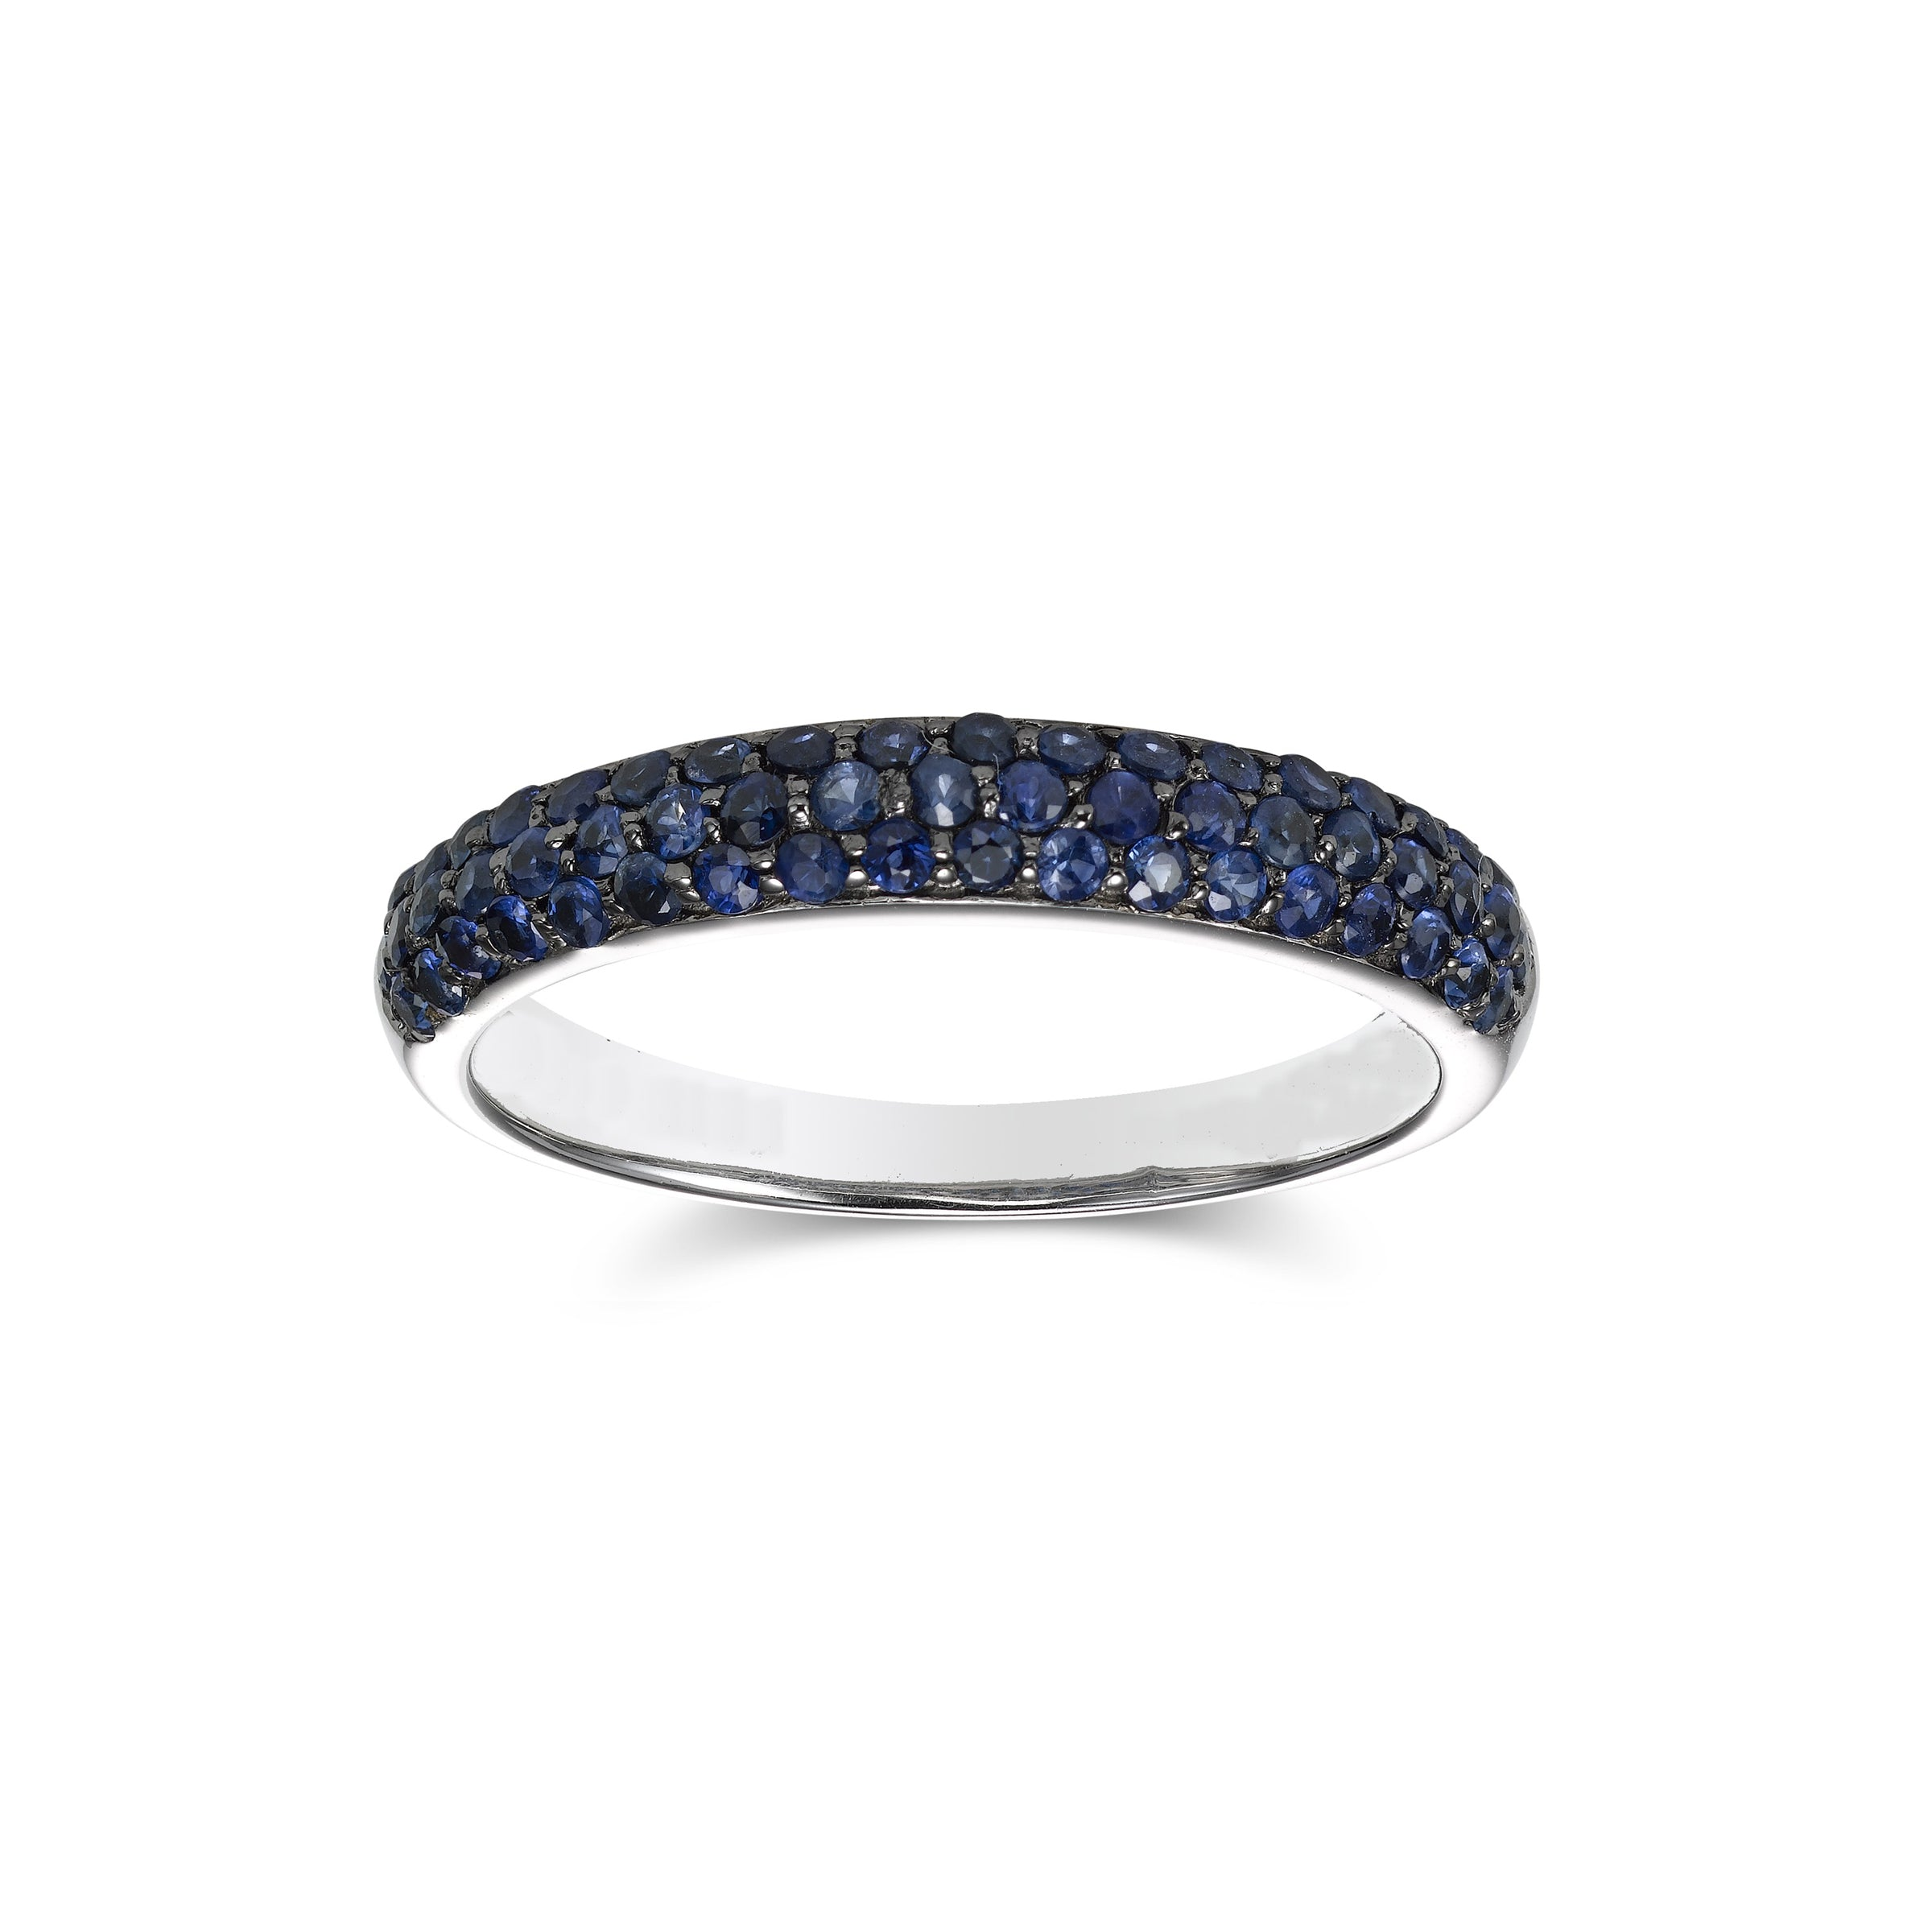 Pave Set Blue Sapphire Ring, 14K White Gold